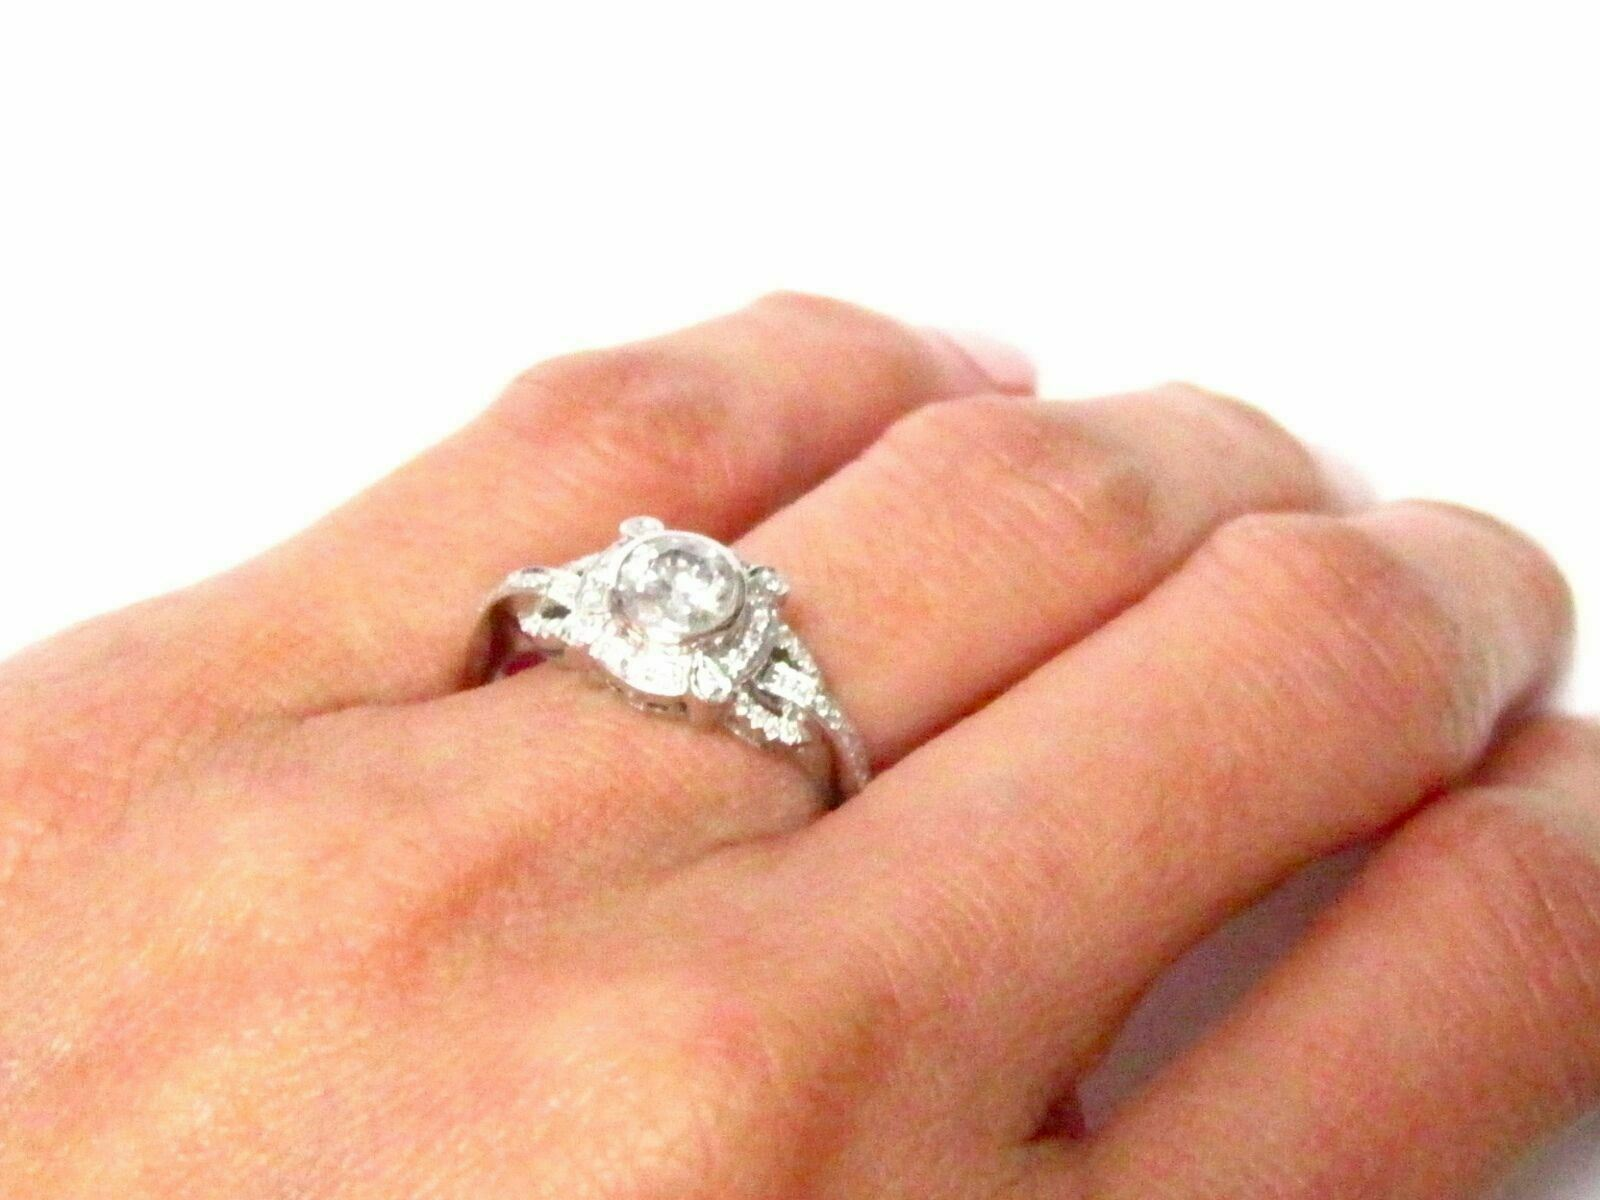 .67 TCW Round Cut Diamond Solitaire Engagement/Anniversary Ring Size 7 G I-1 14k